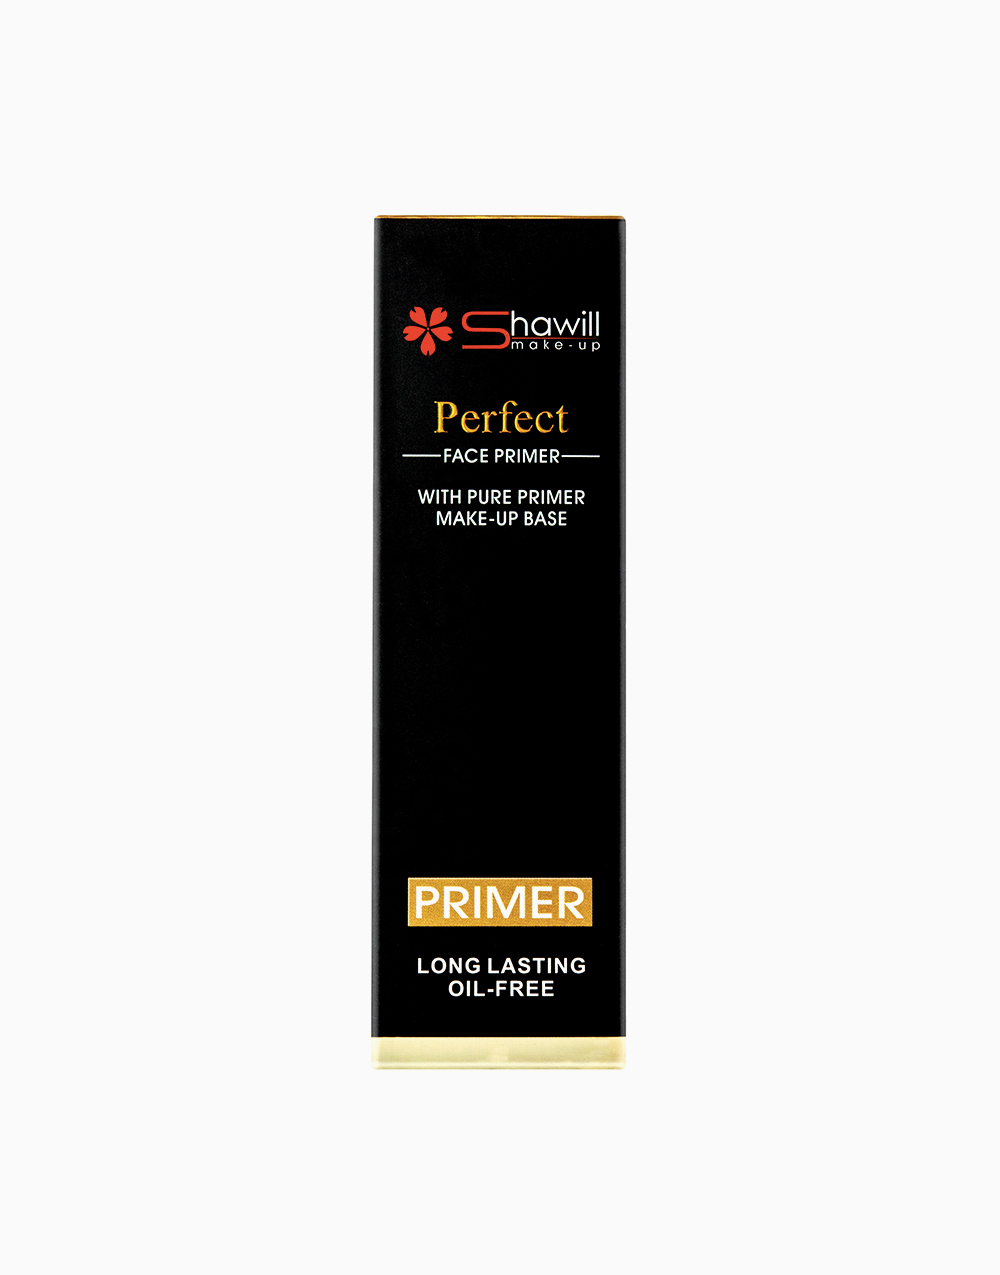 Perfect Face Primer by Shawill Cosmetics